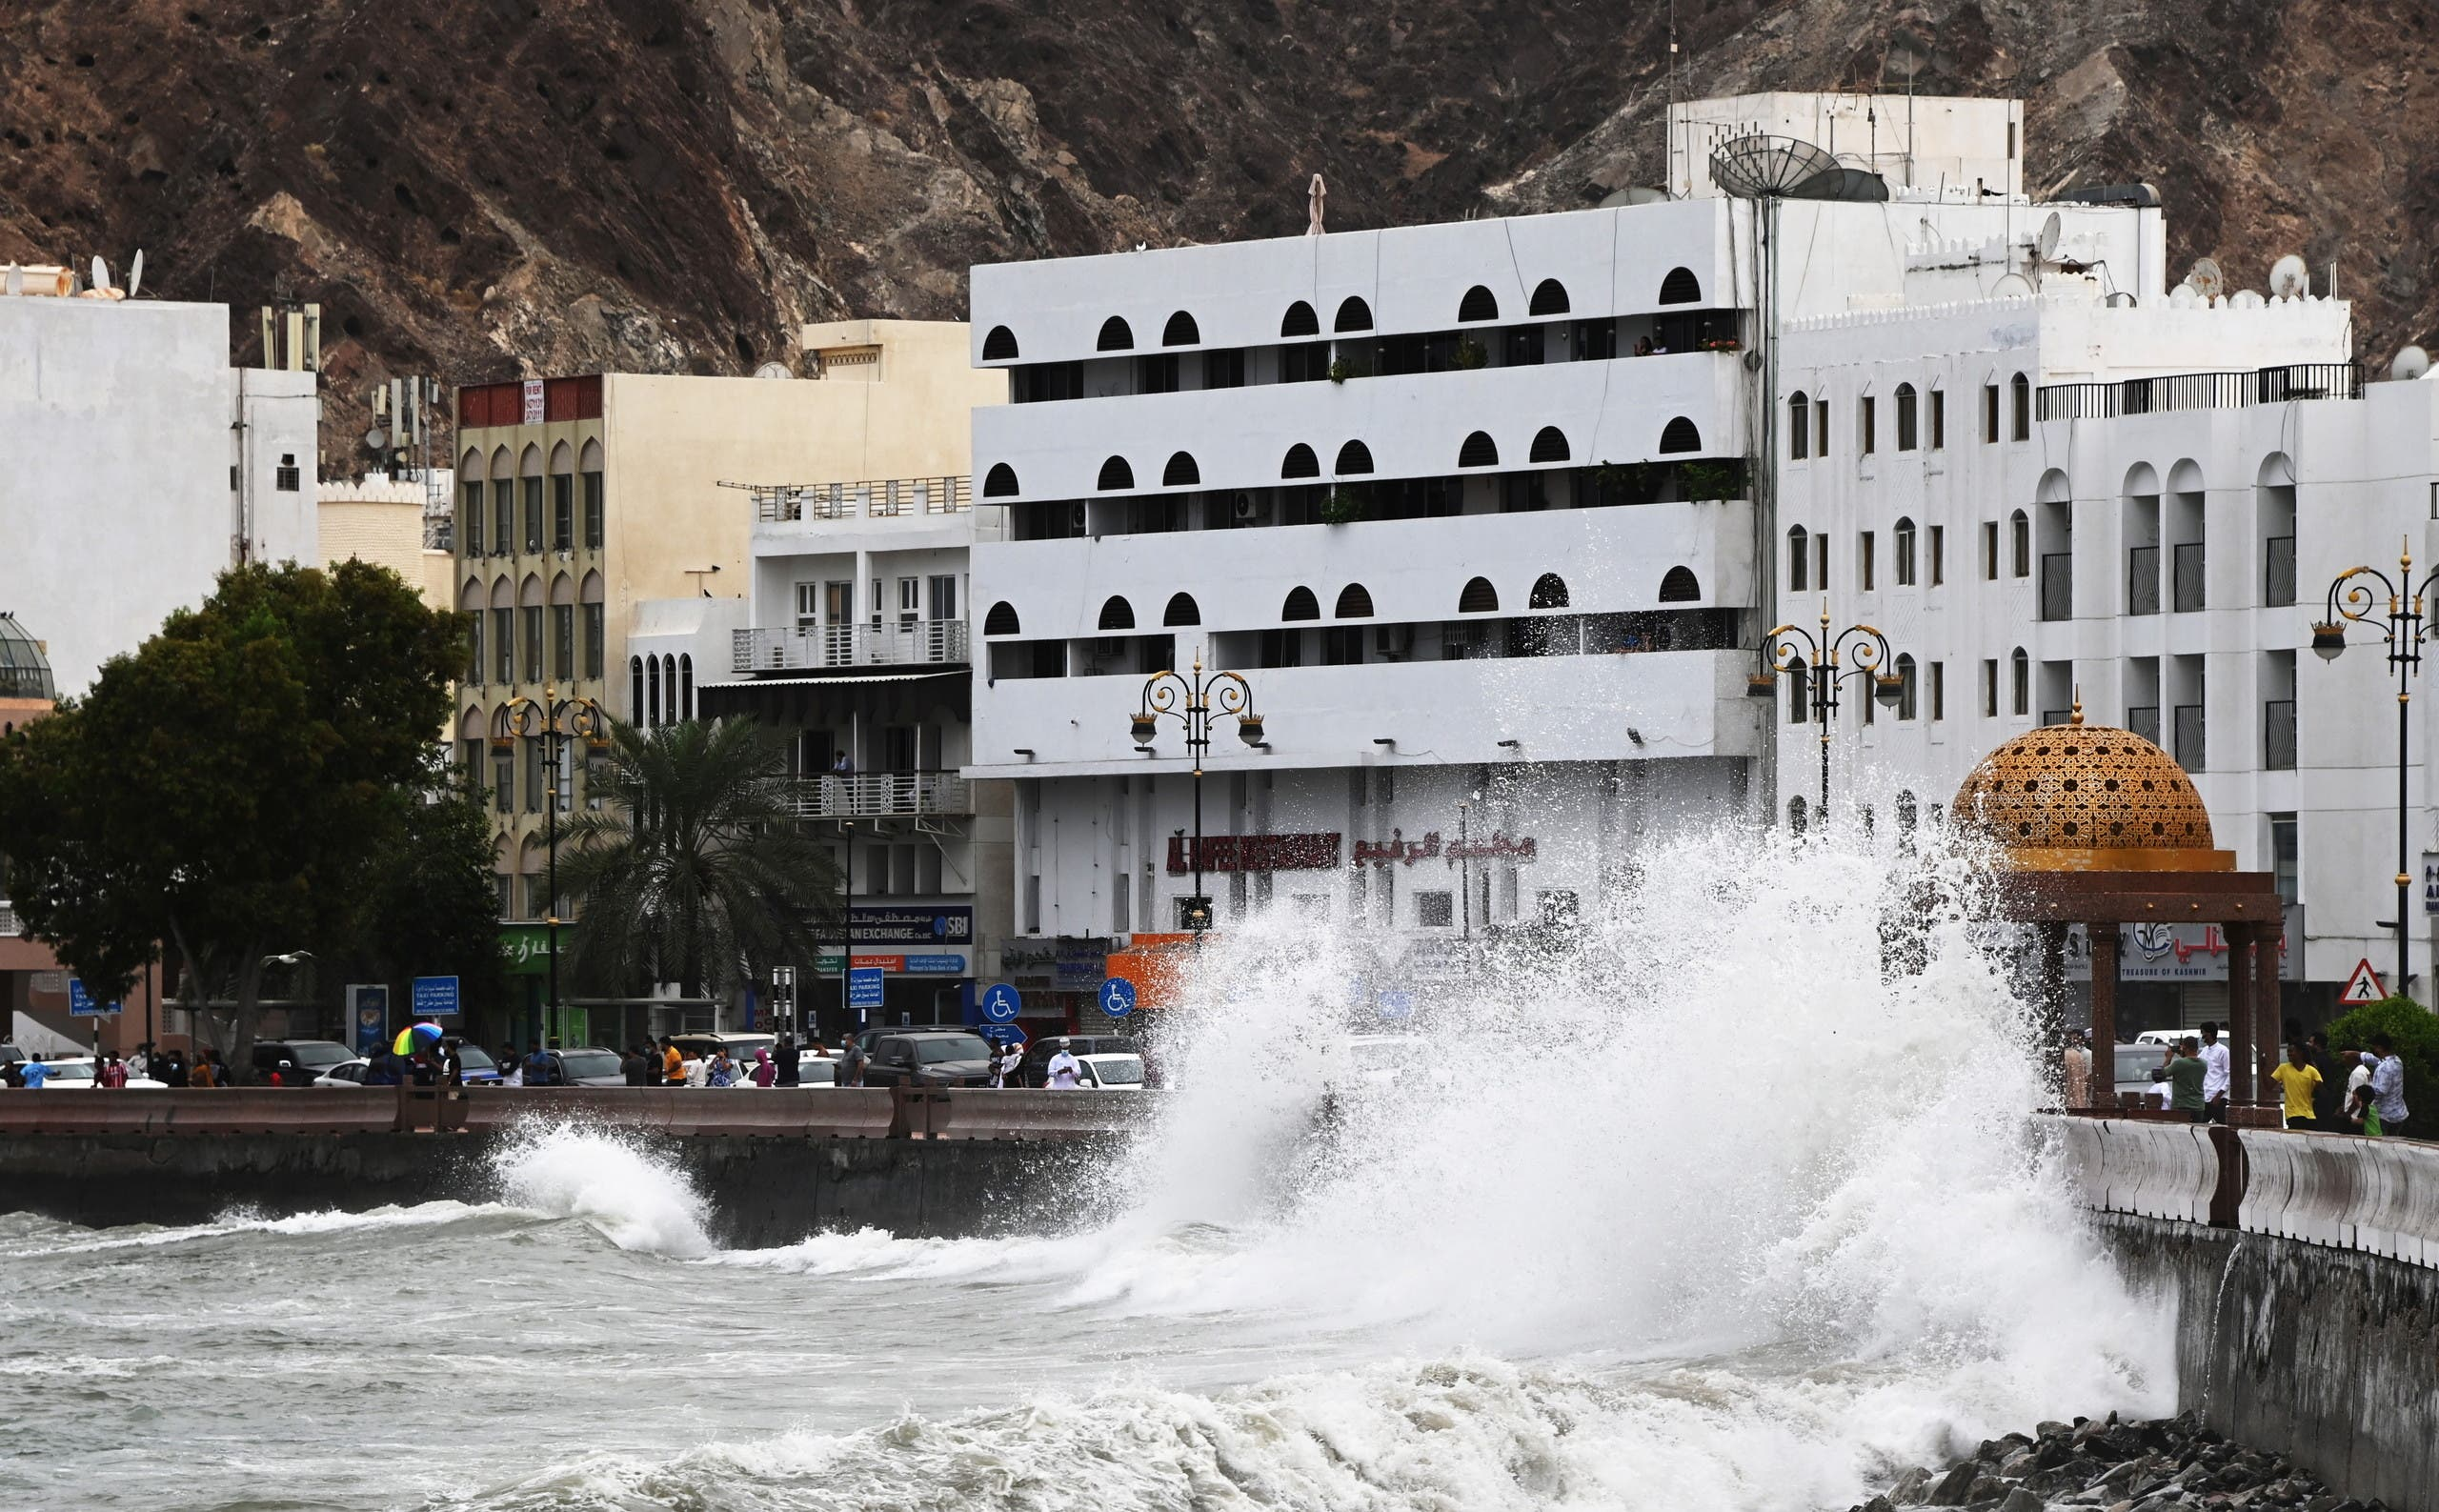 Strong waves hit the shore as Cyclone Shaheen makes landfall in Muscat Oman, October 2, 2021. (Reuters)